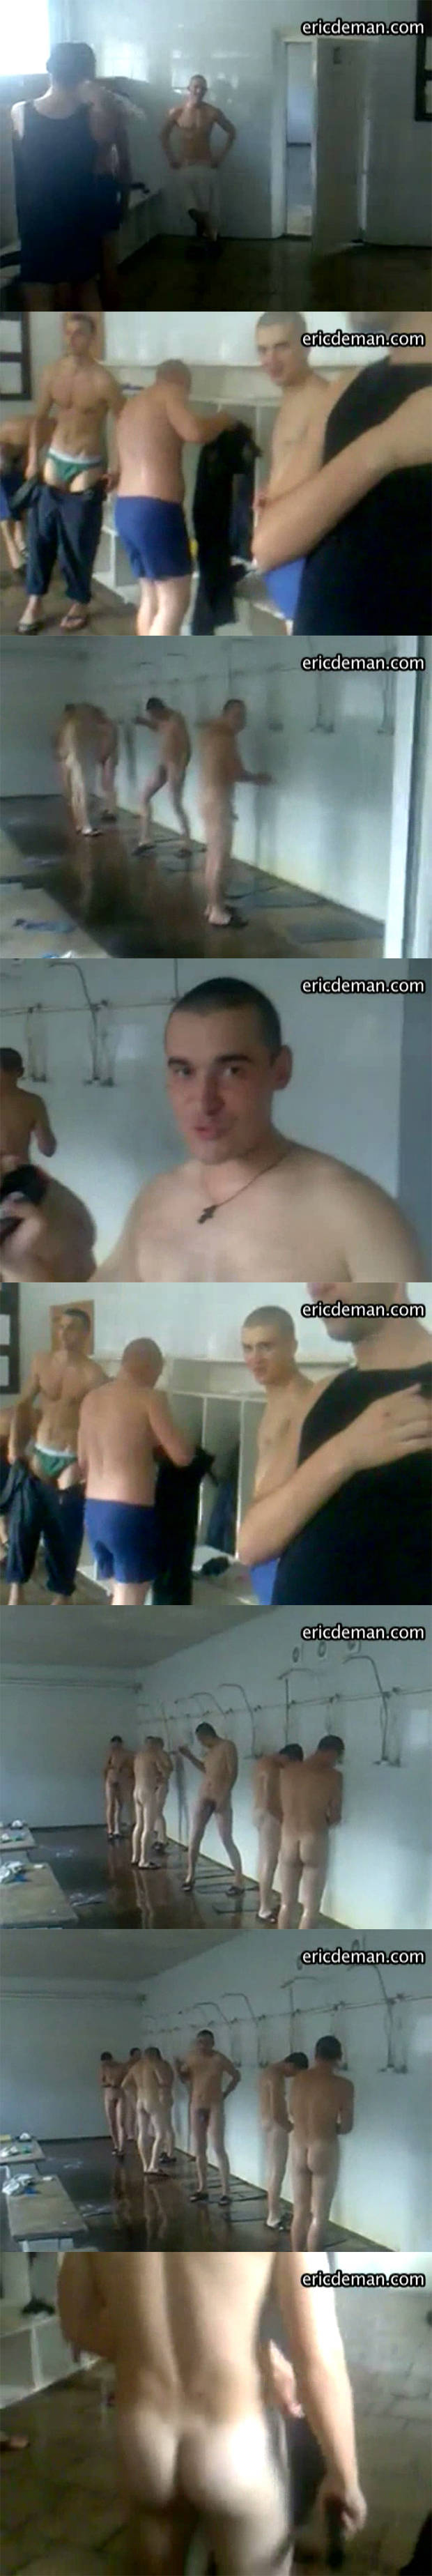 army guys naked locker room